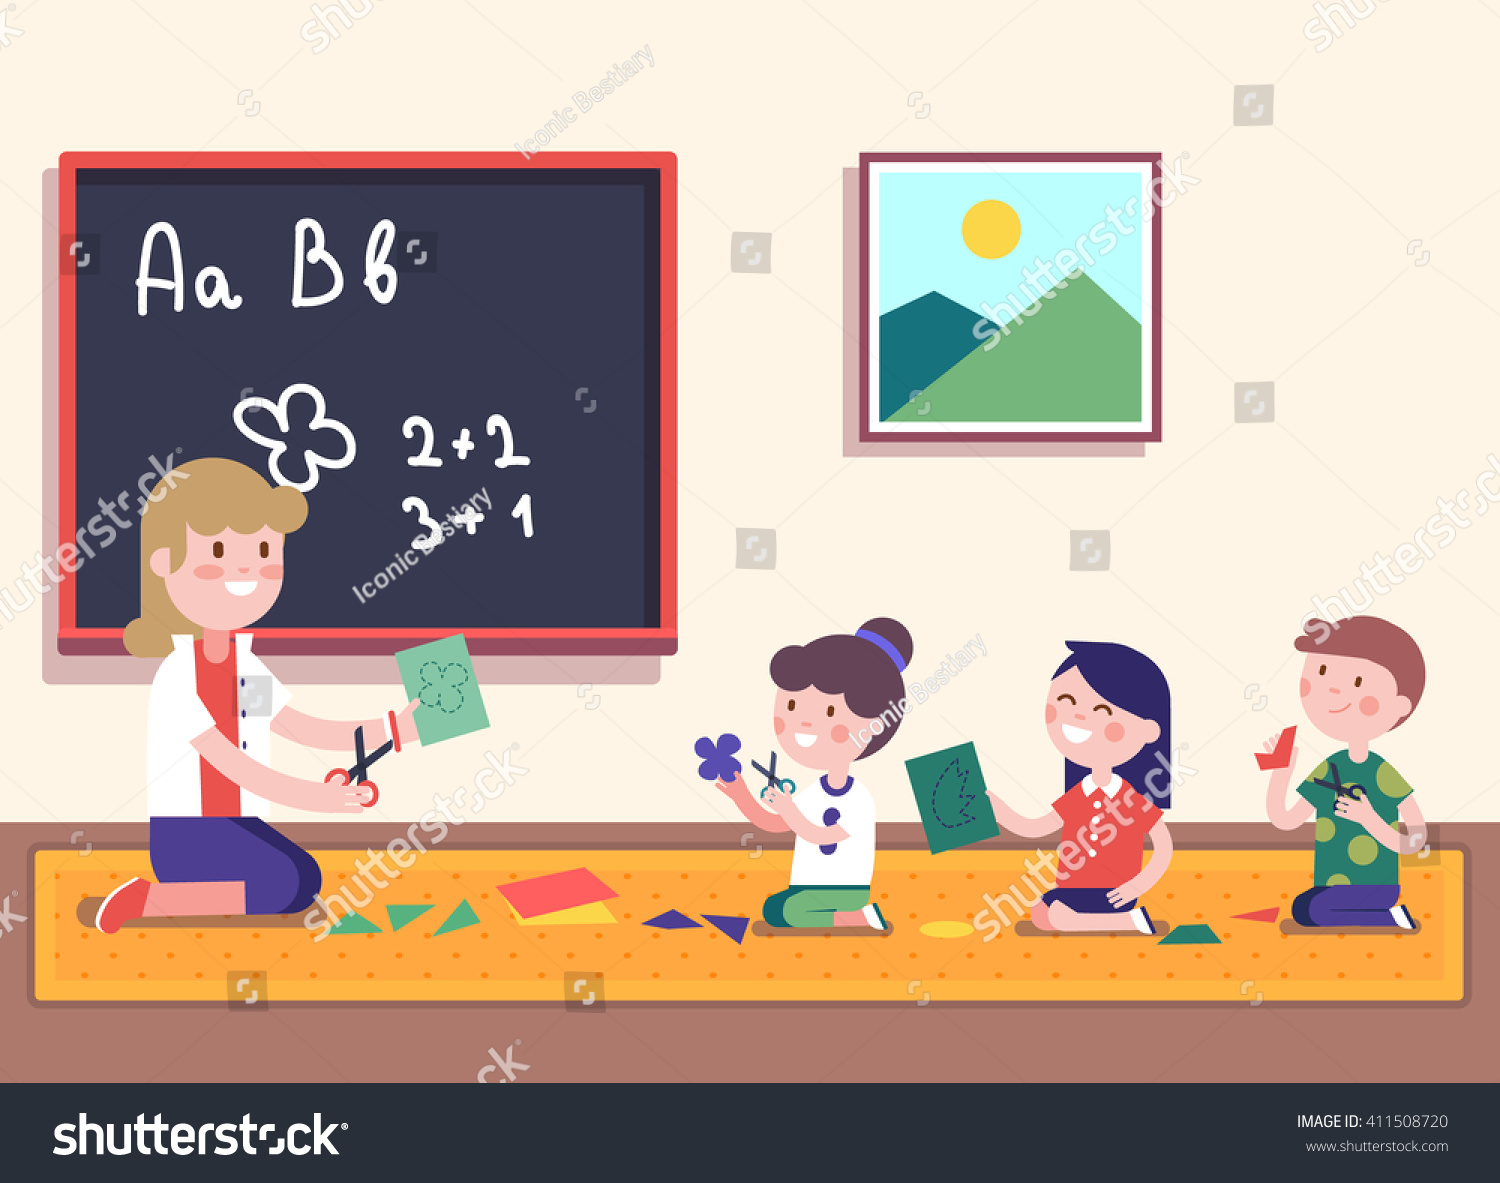 Schulklasse im unterricht clipart  Kindergarten Teacher Teaching Math Her Small Stock-vektorgrafik ...